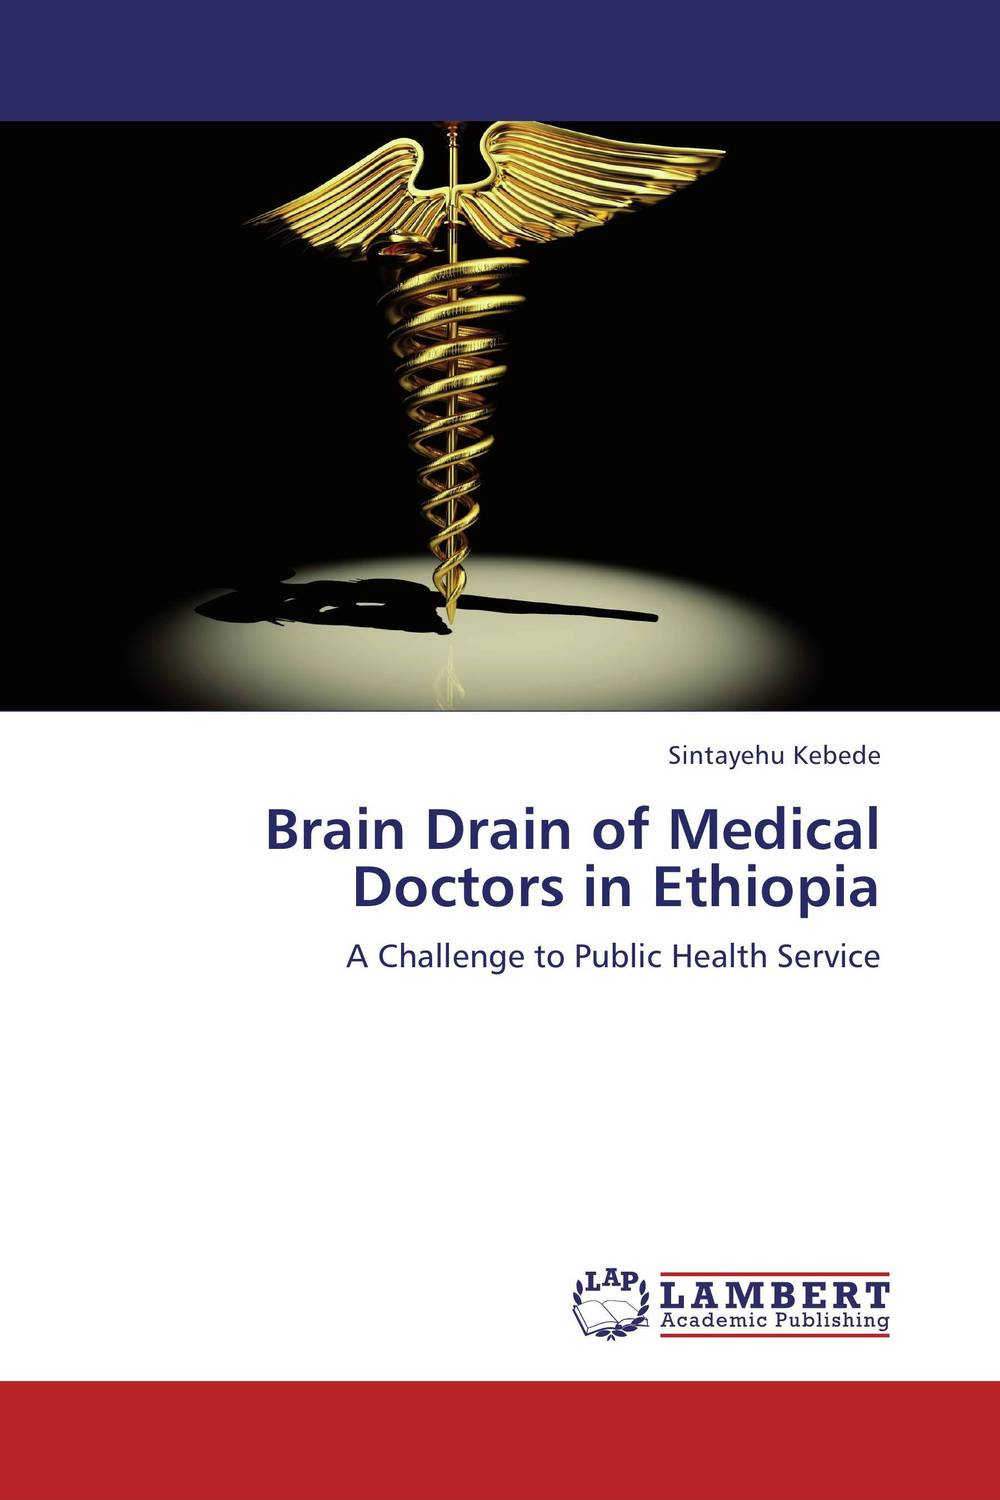 Brain Drain of Medical Doctors in Ethiopia atlas of the developing mouse brain at e17 5 p0 and p6